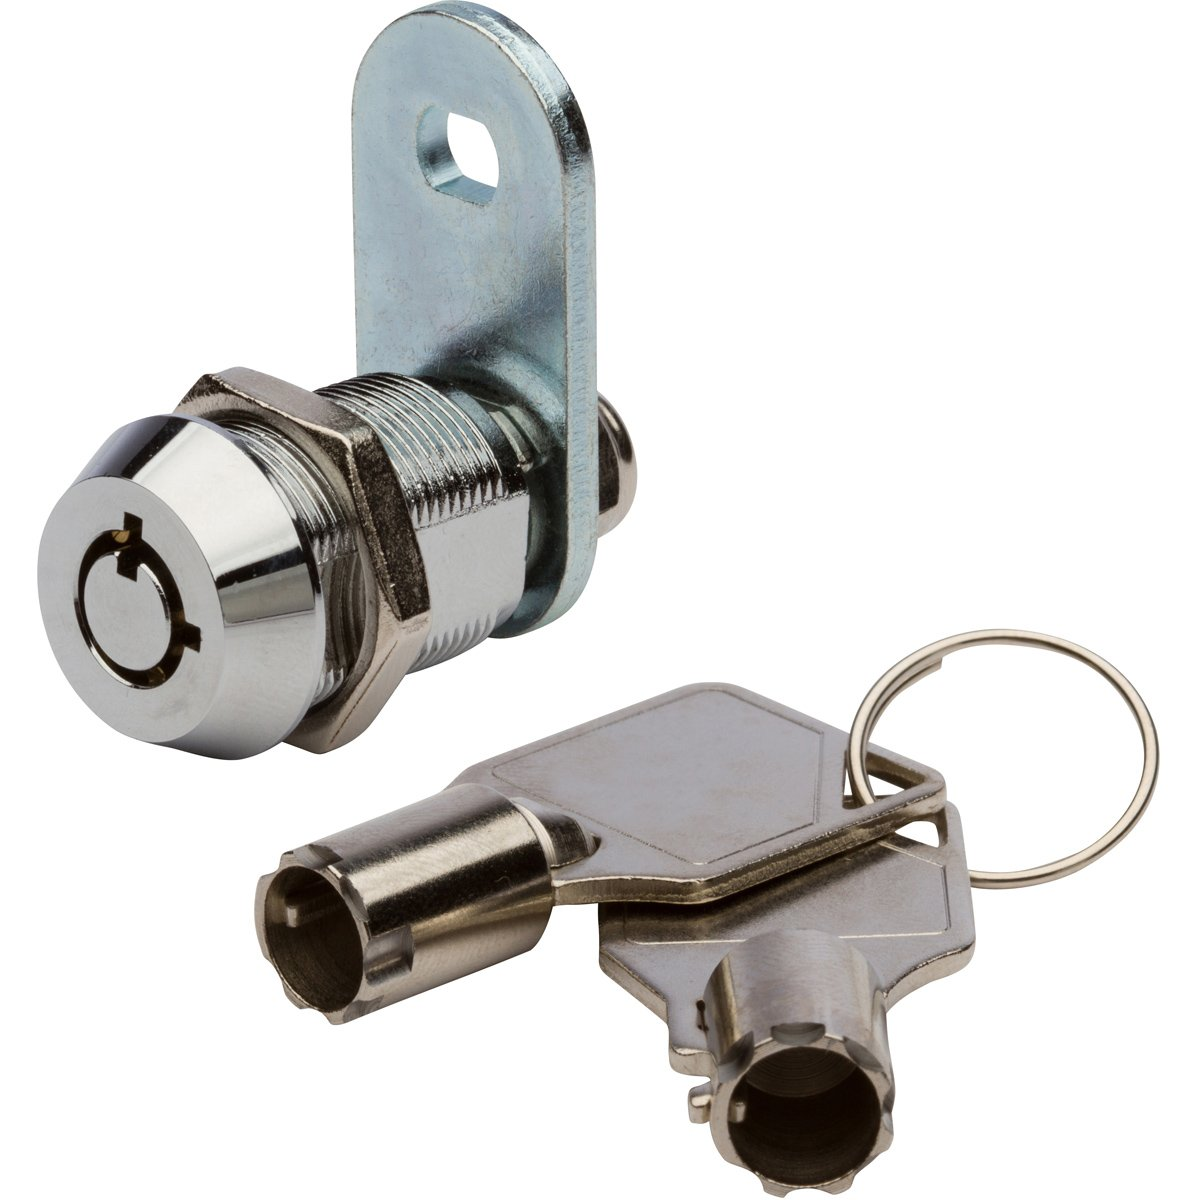 Tubular Cam Lock with 7/8'' Cylinder and Chrome Finish, Keyed Alike with 2 Keys, 1 1/4'' Cam and Offset Cam